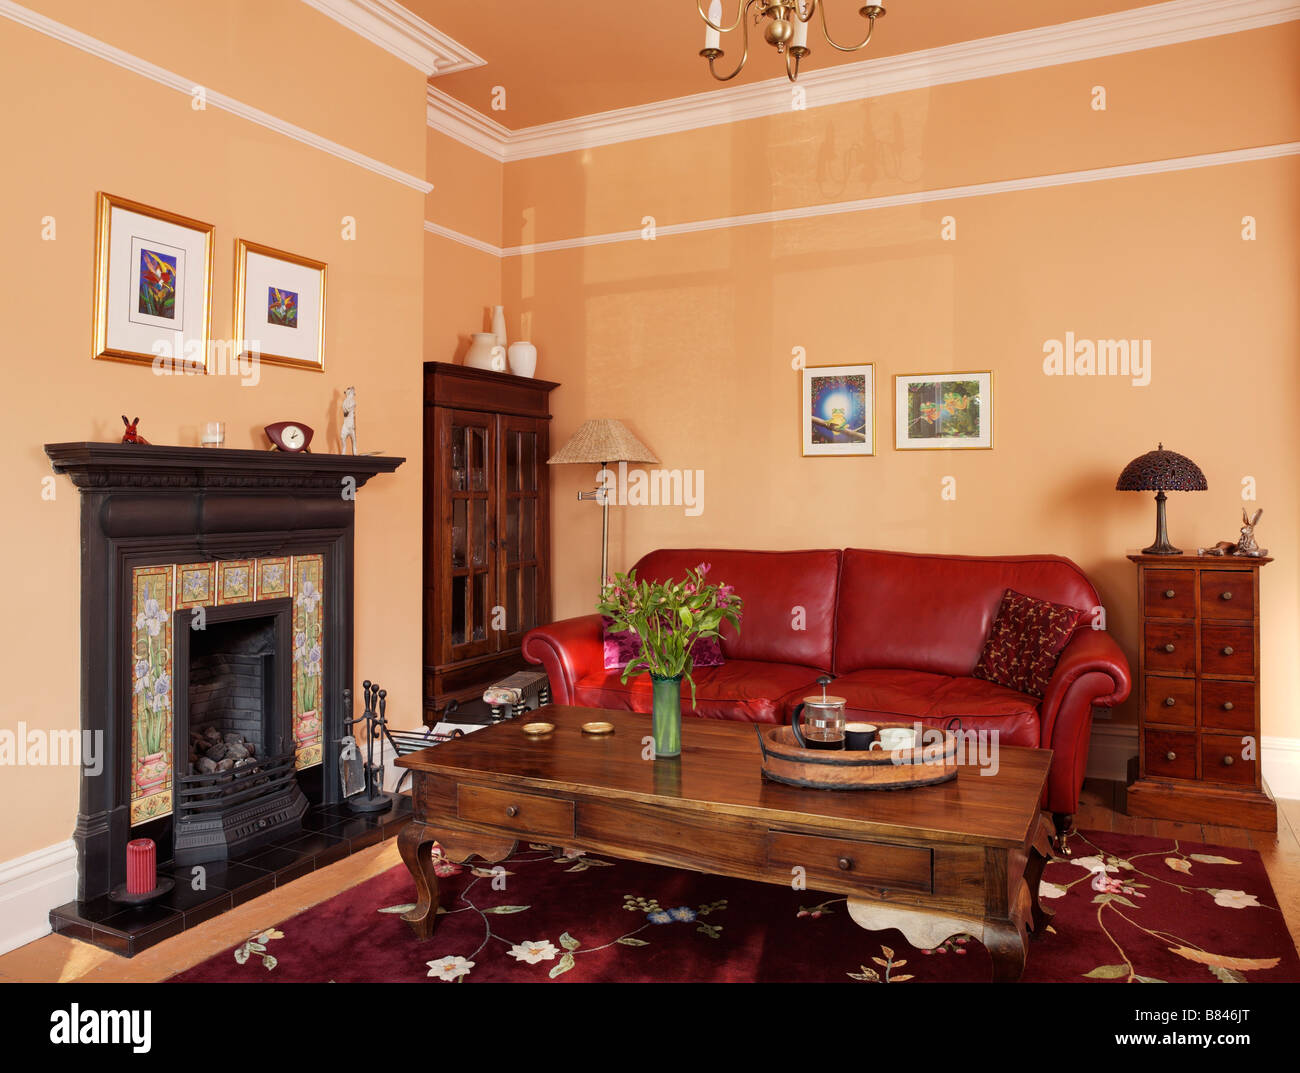 https www alamy com stock photo traditional living room with red leather sofa and wooden coffee table 22220656 html